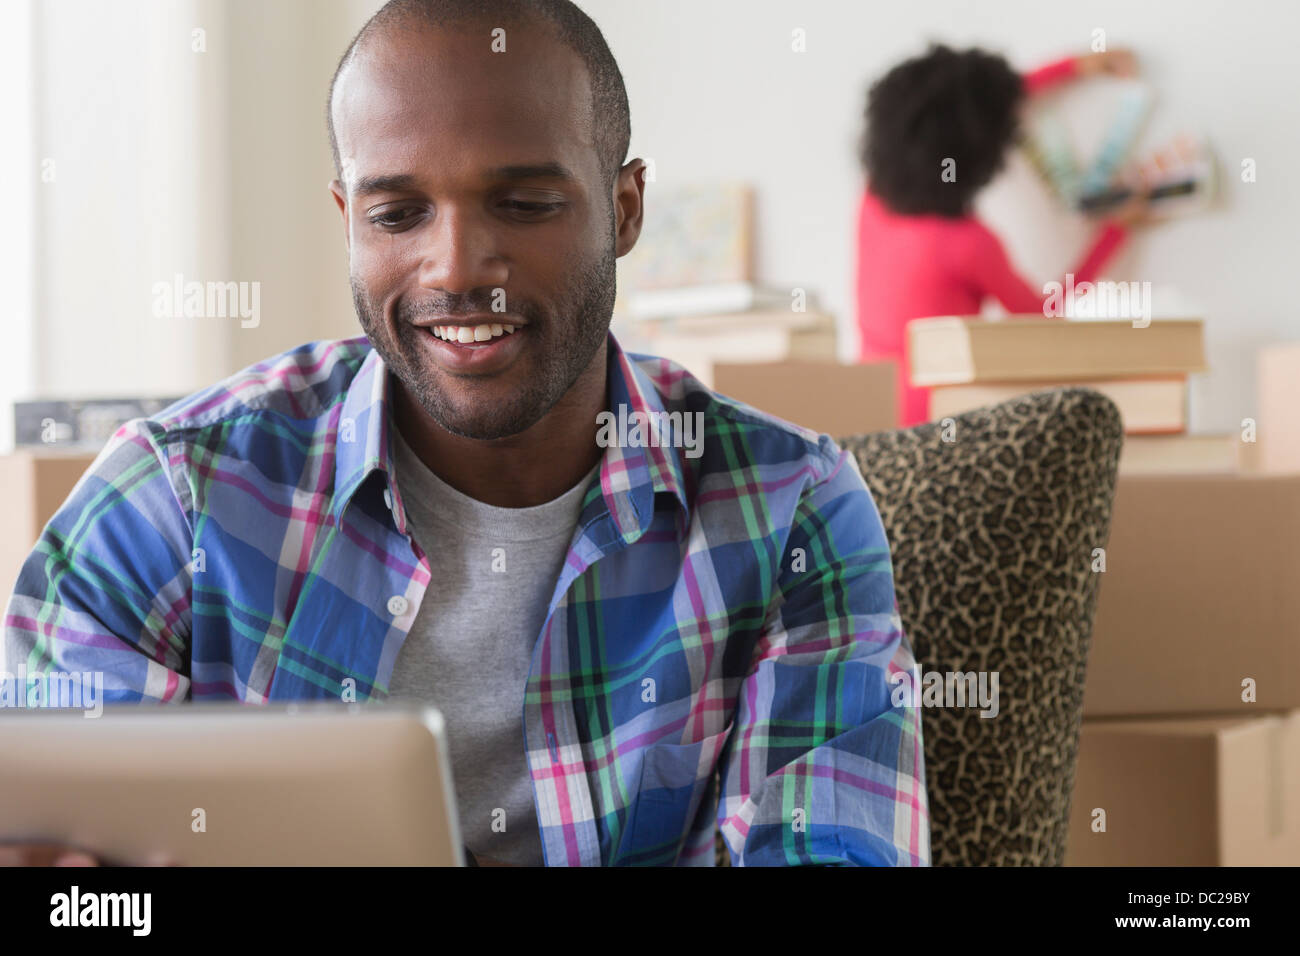 Mid adult man using electronic reader - Stock Image